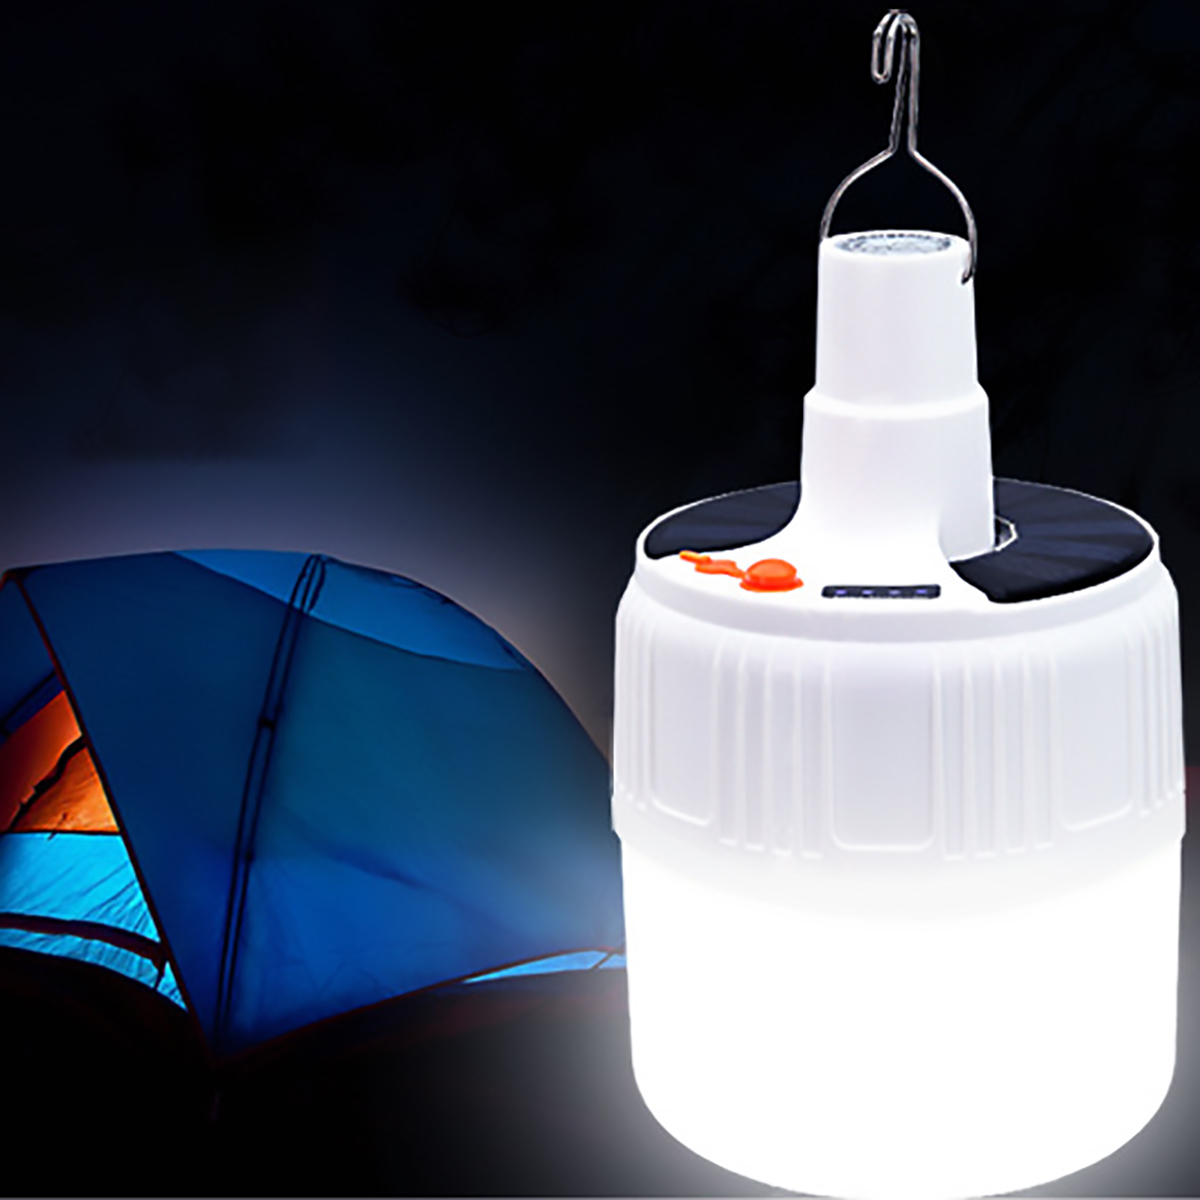 Portable Lamp 50W USB Rechargeable Emergency Lights Solar Charge Outdoor Garden Camping Hanging Night Light Lamp Tent Light